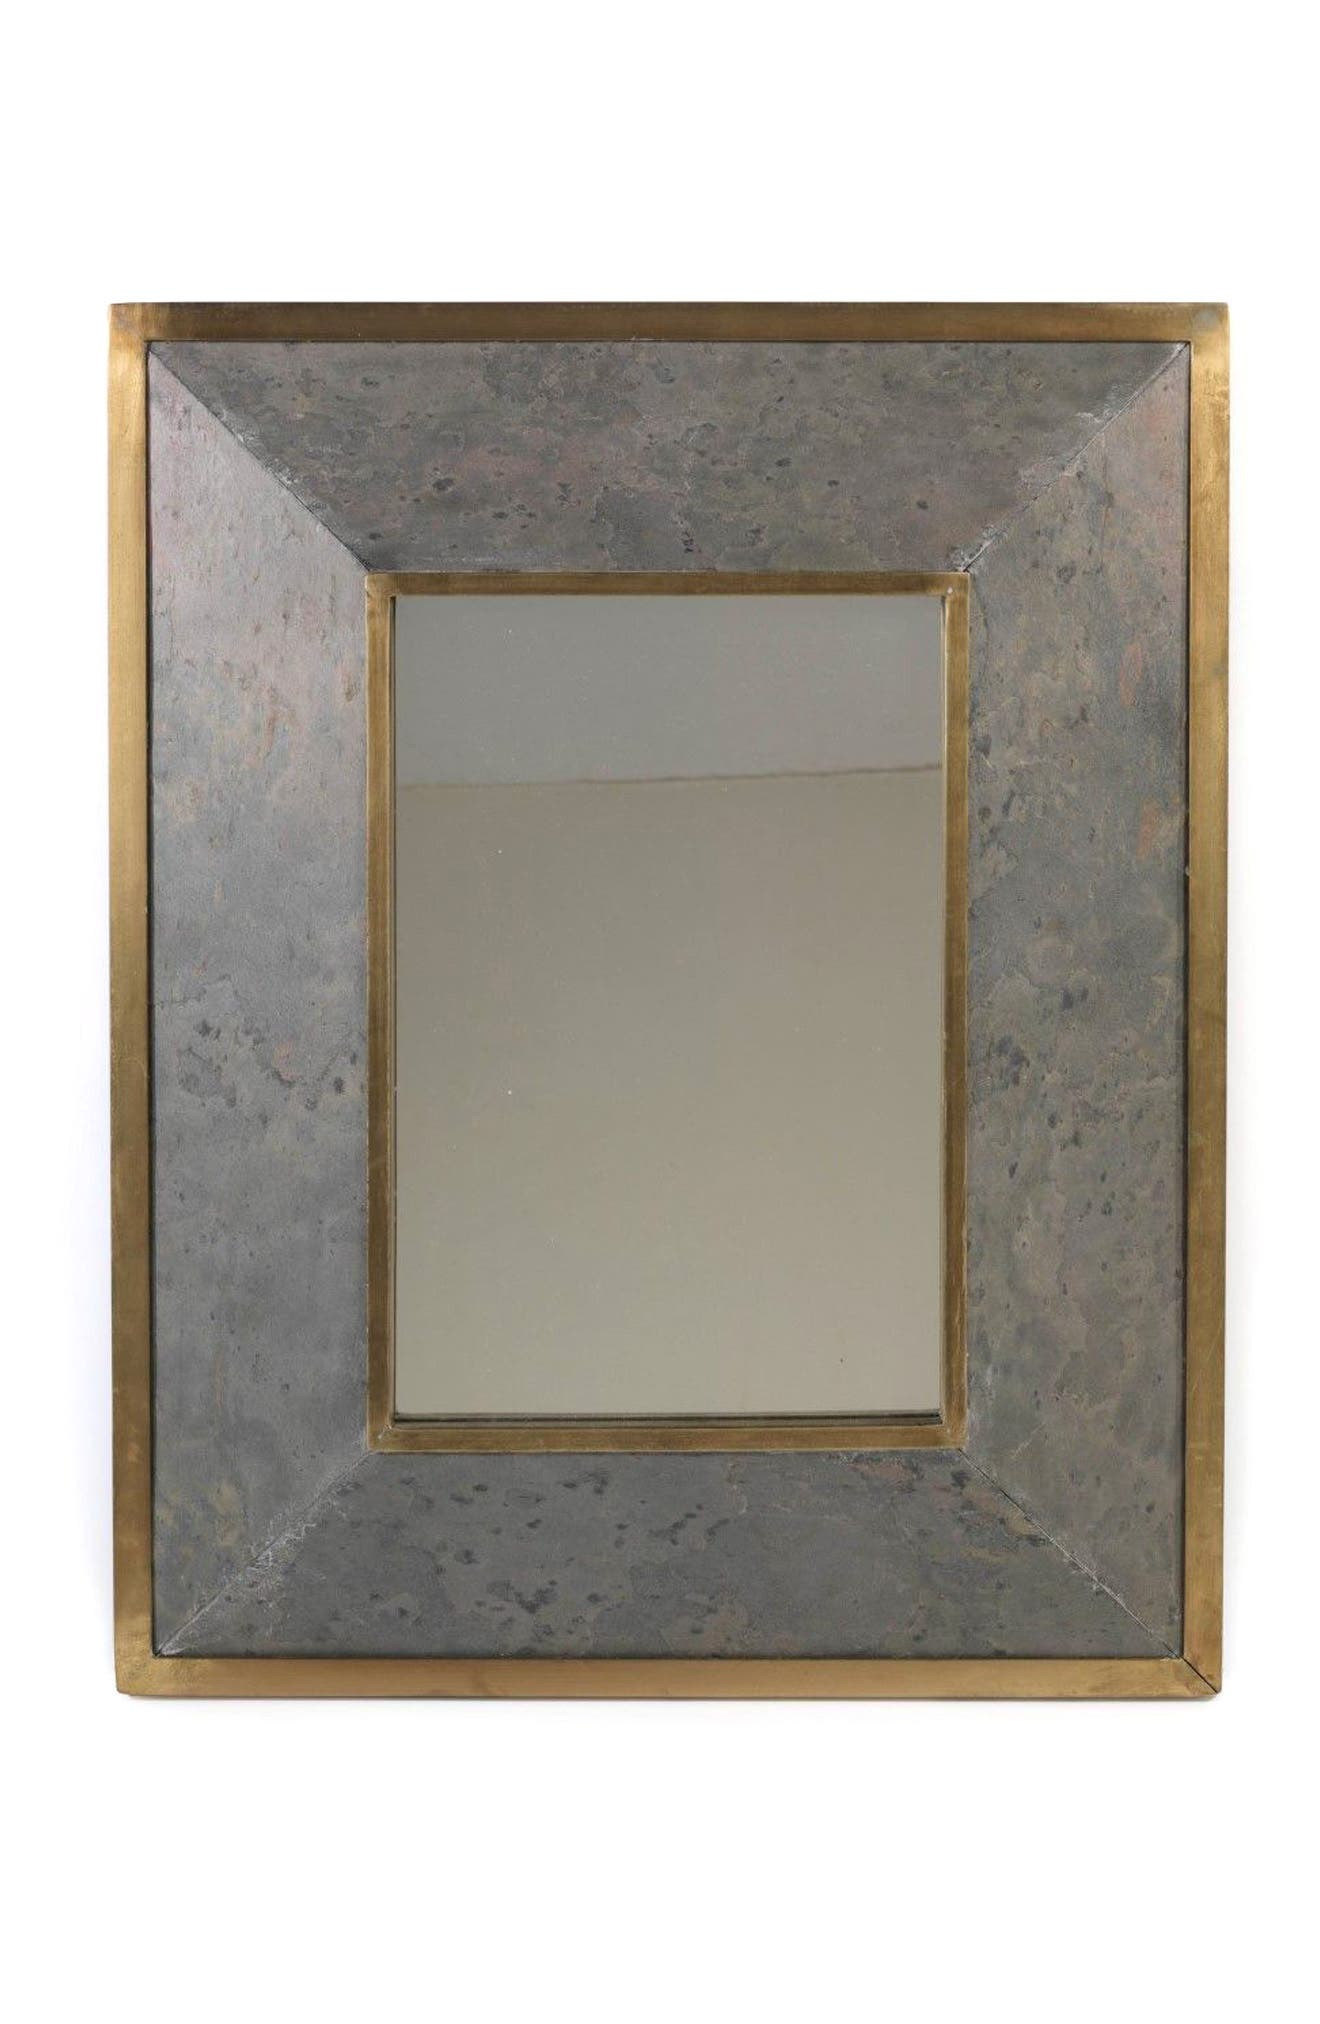 Lille Wall Mirror,                         Main,                         color, Brown/ Silver/ Pewter